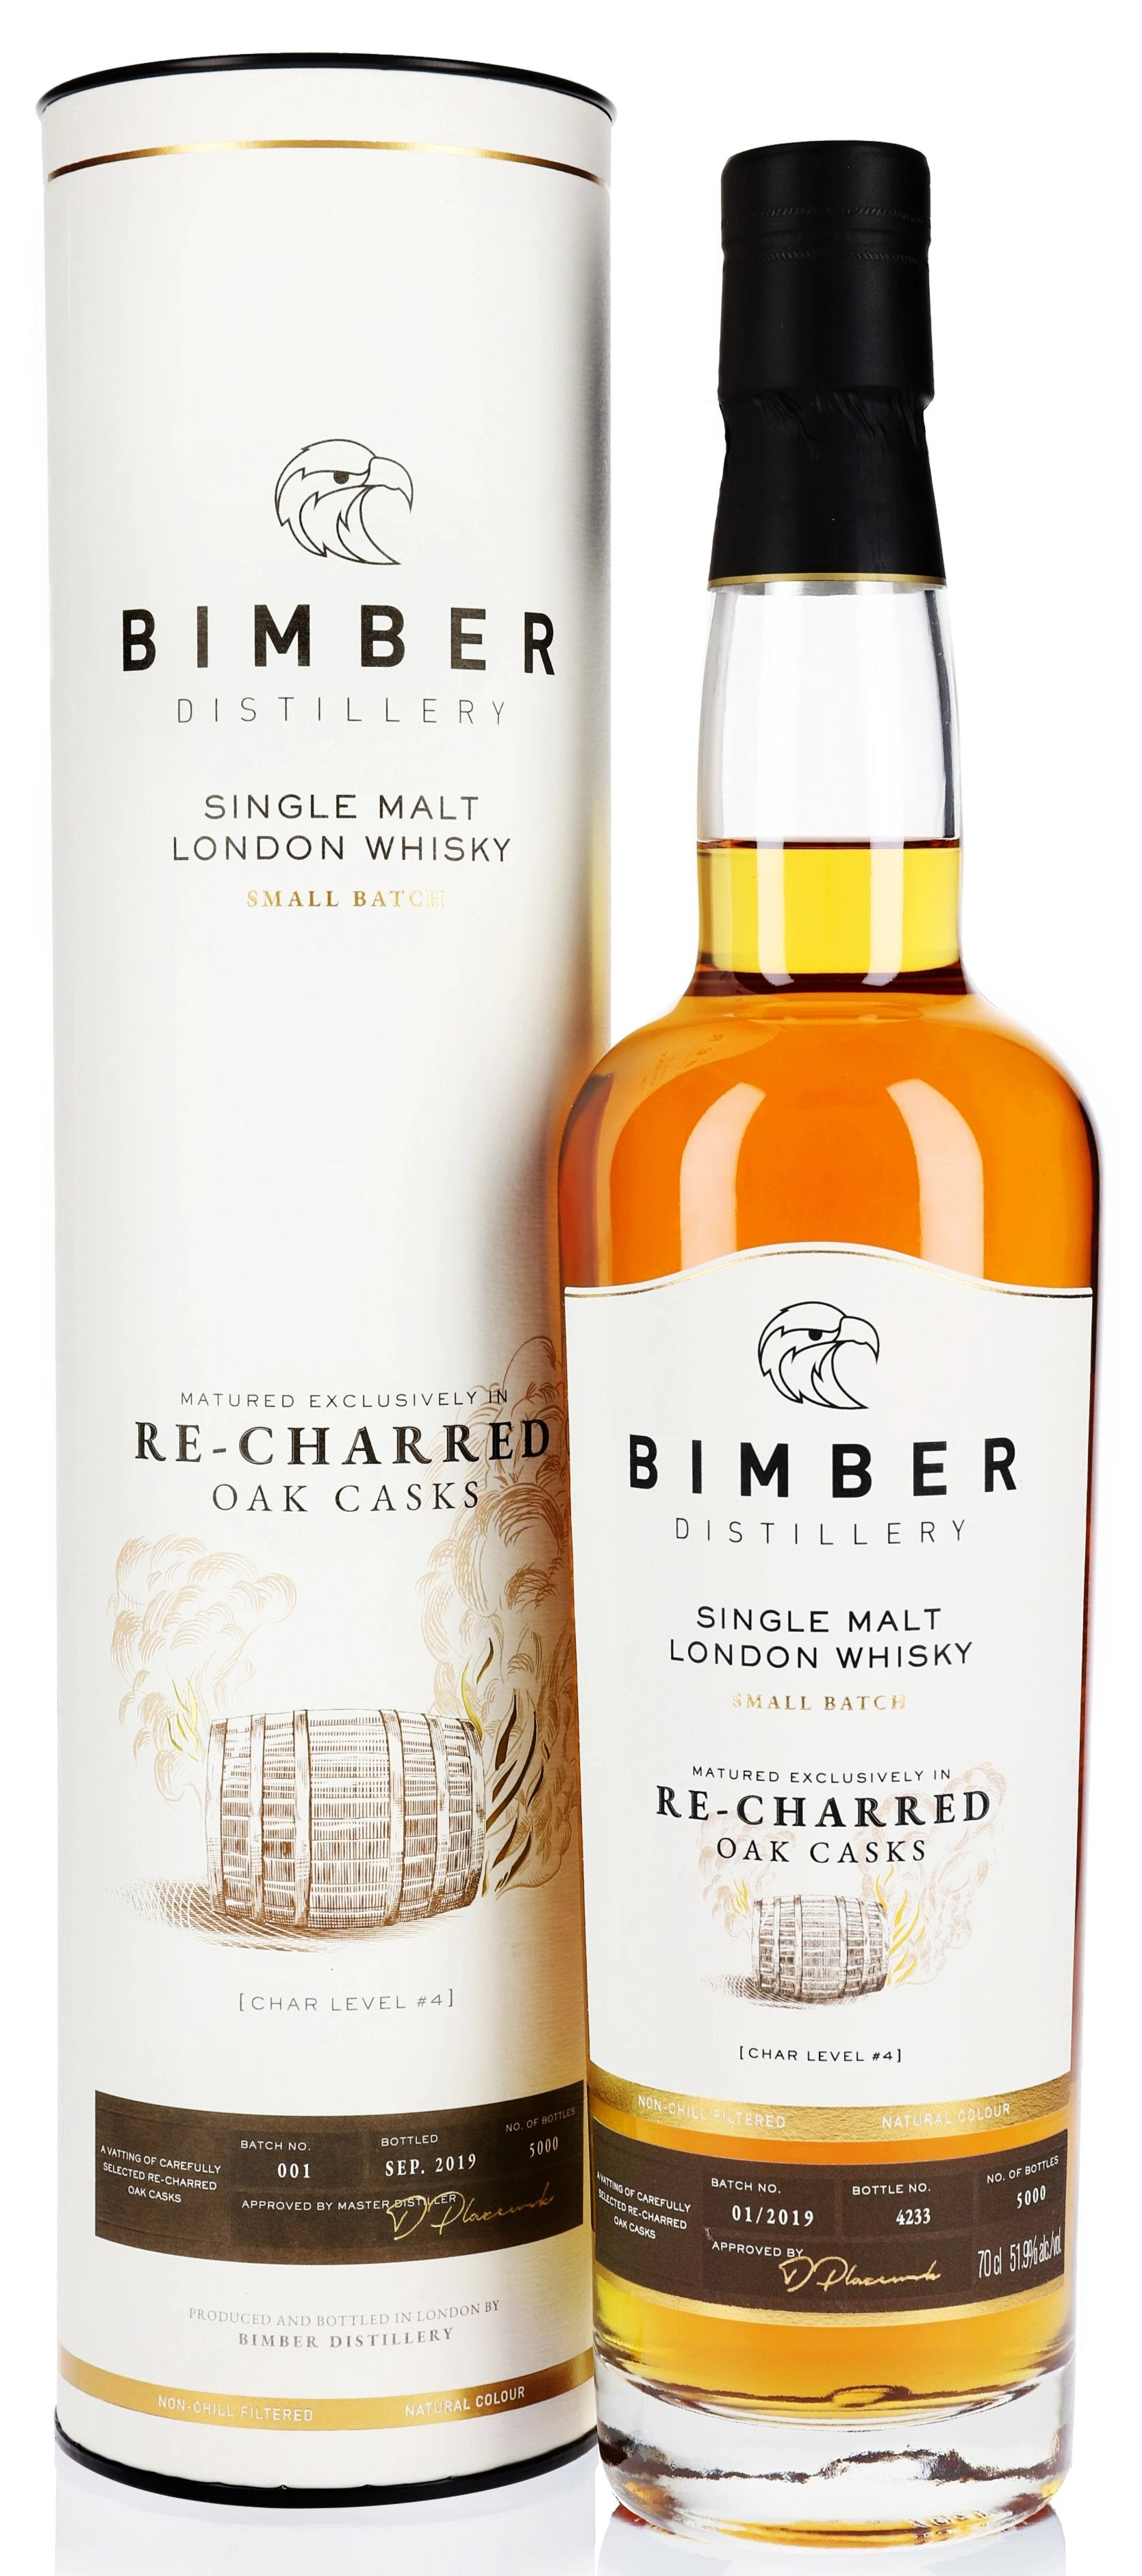 Bimber 'Re-charred Oak Casks' London Whisky